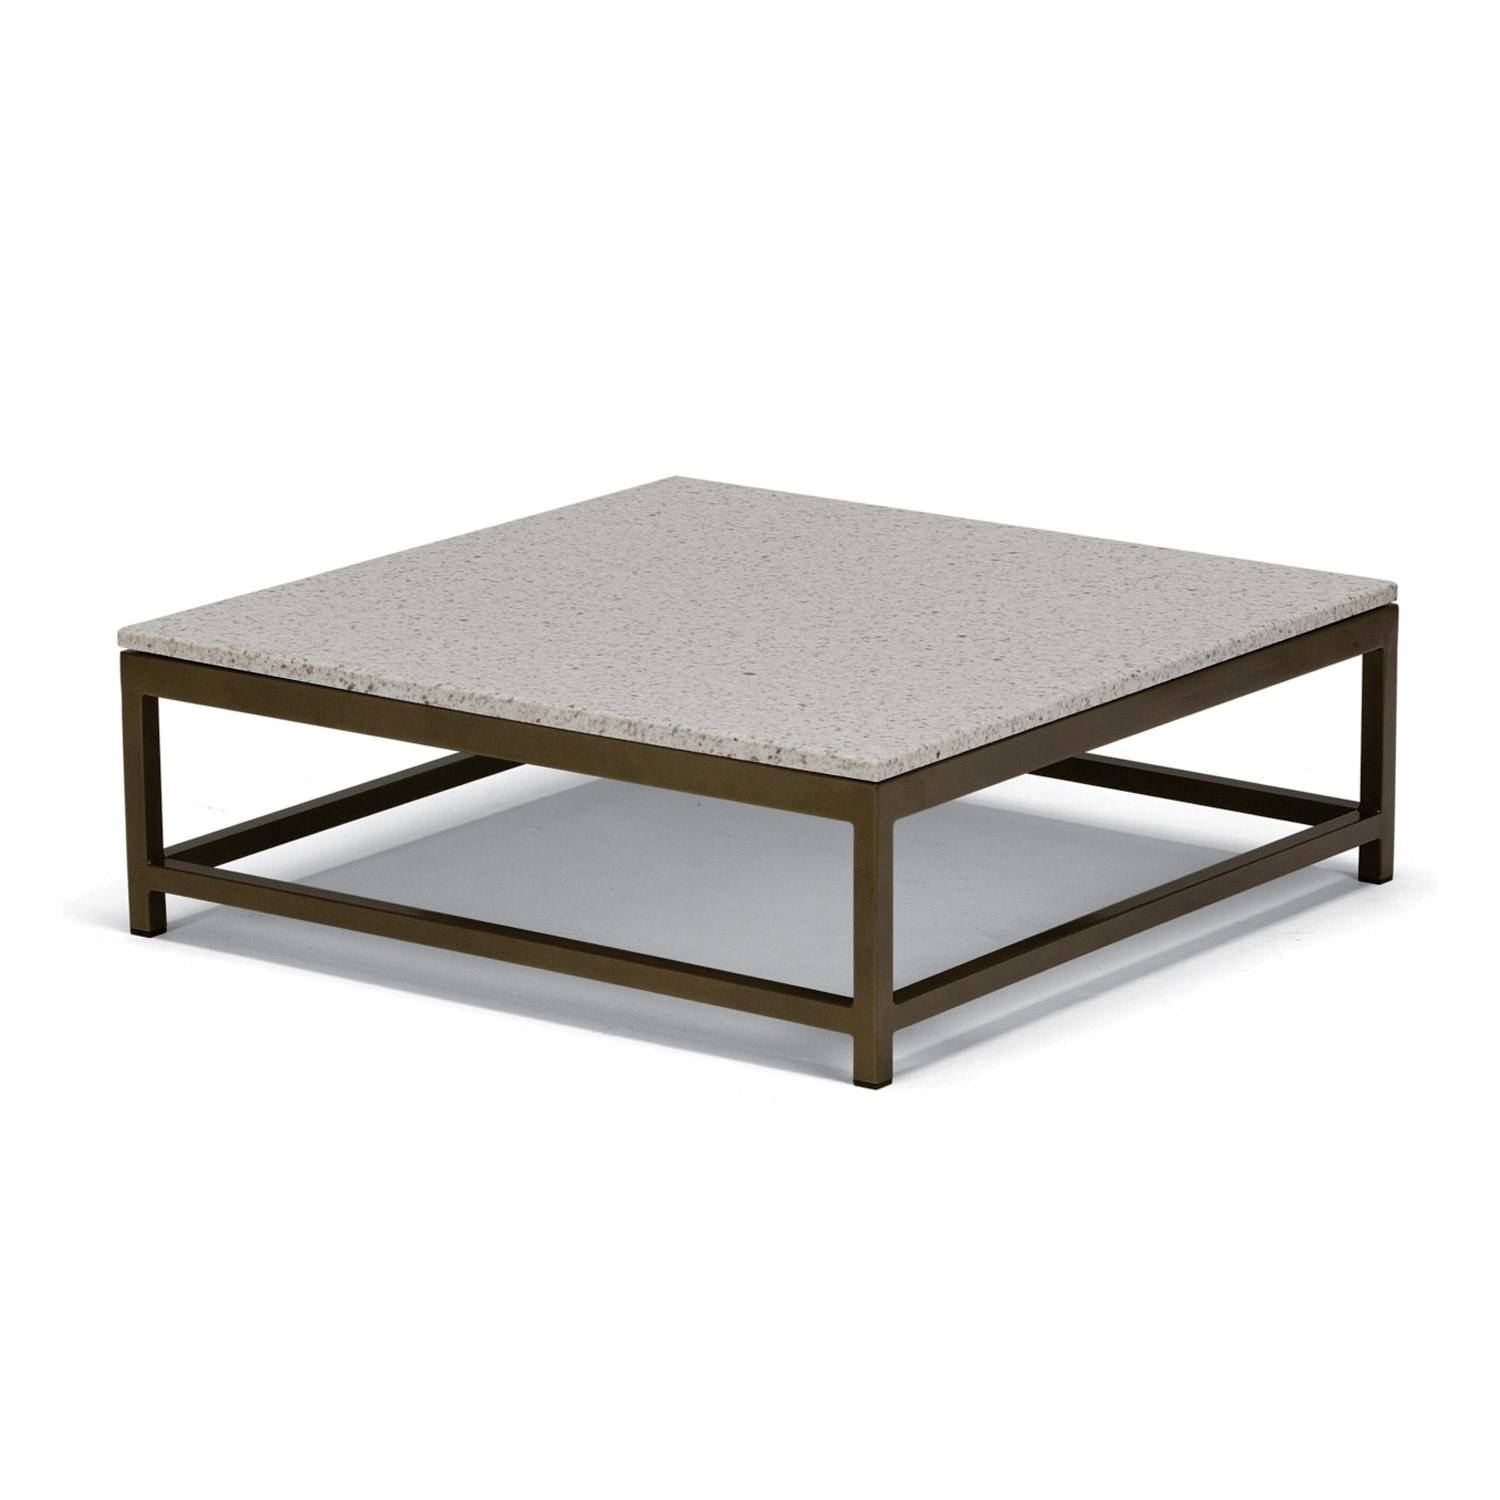 Marvelous Stone Top Coffee Table Designs – Stone And Wood Coffee With Regard To Square Stone Coffee Tables (View 18 of 30)